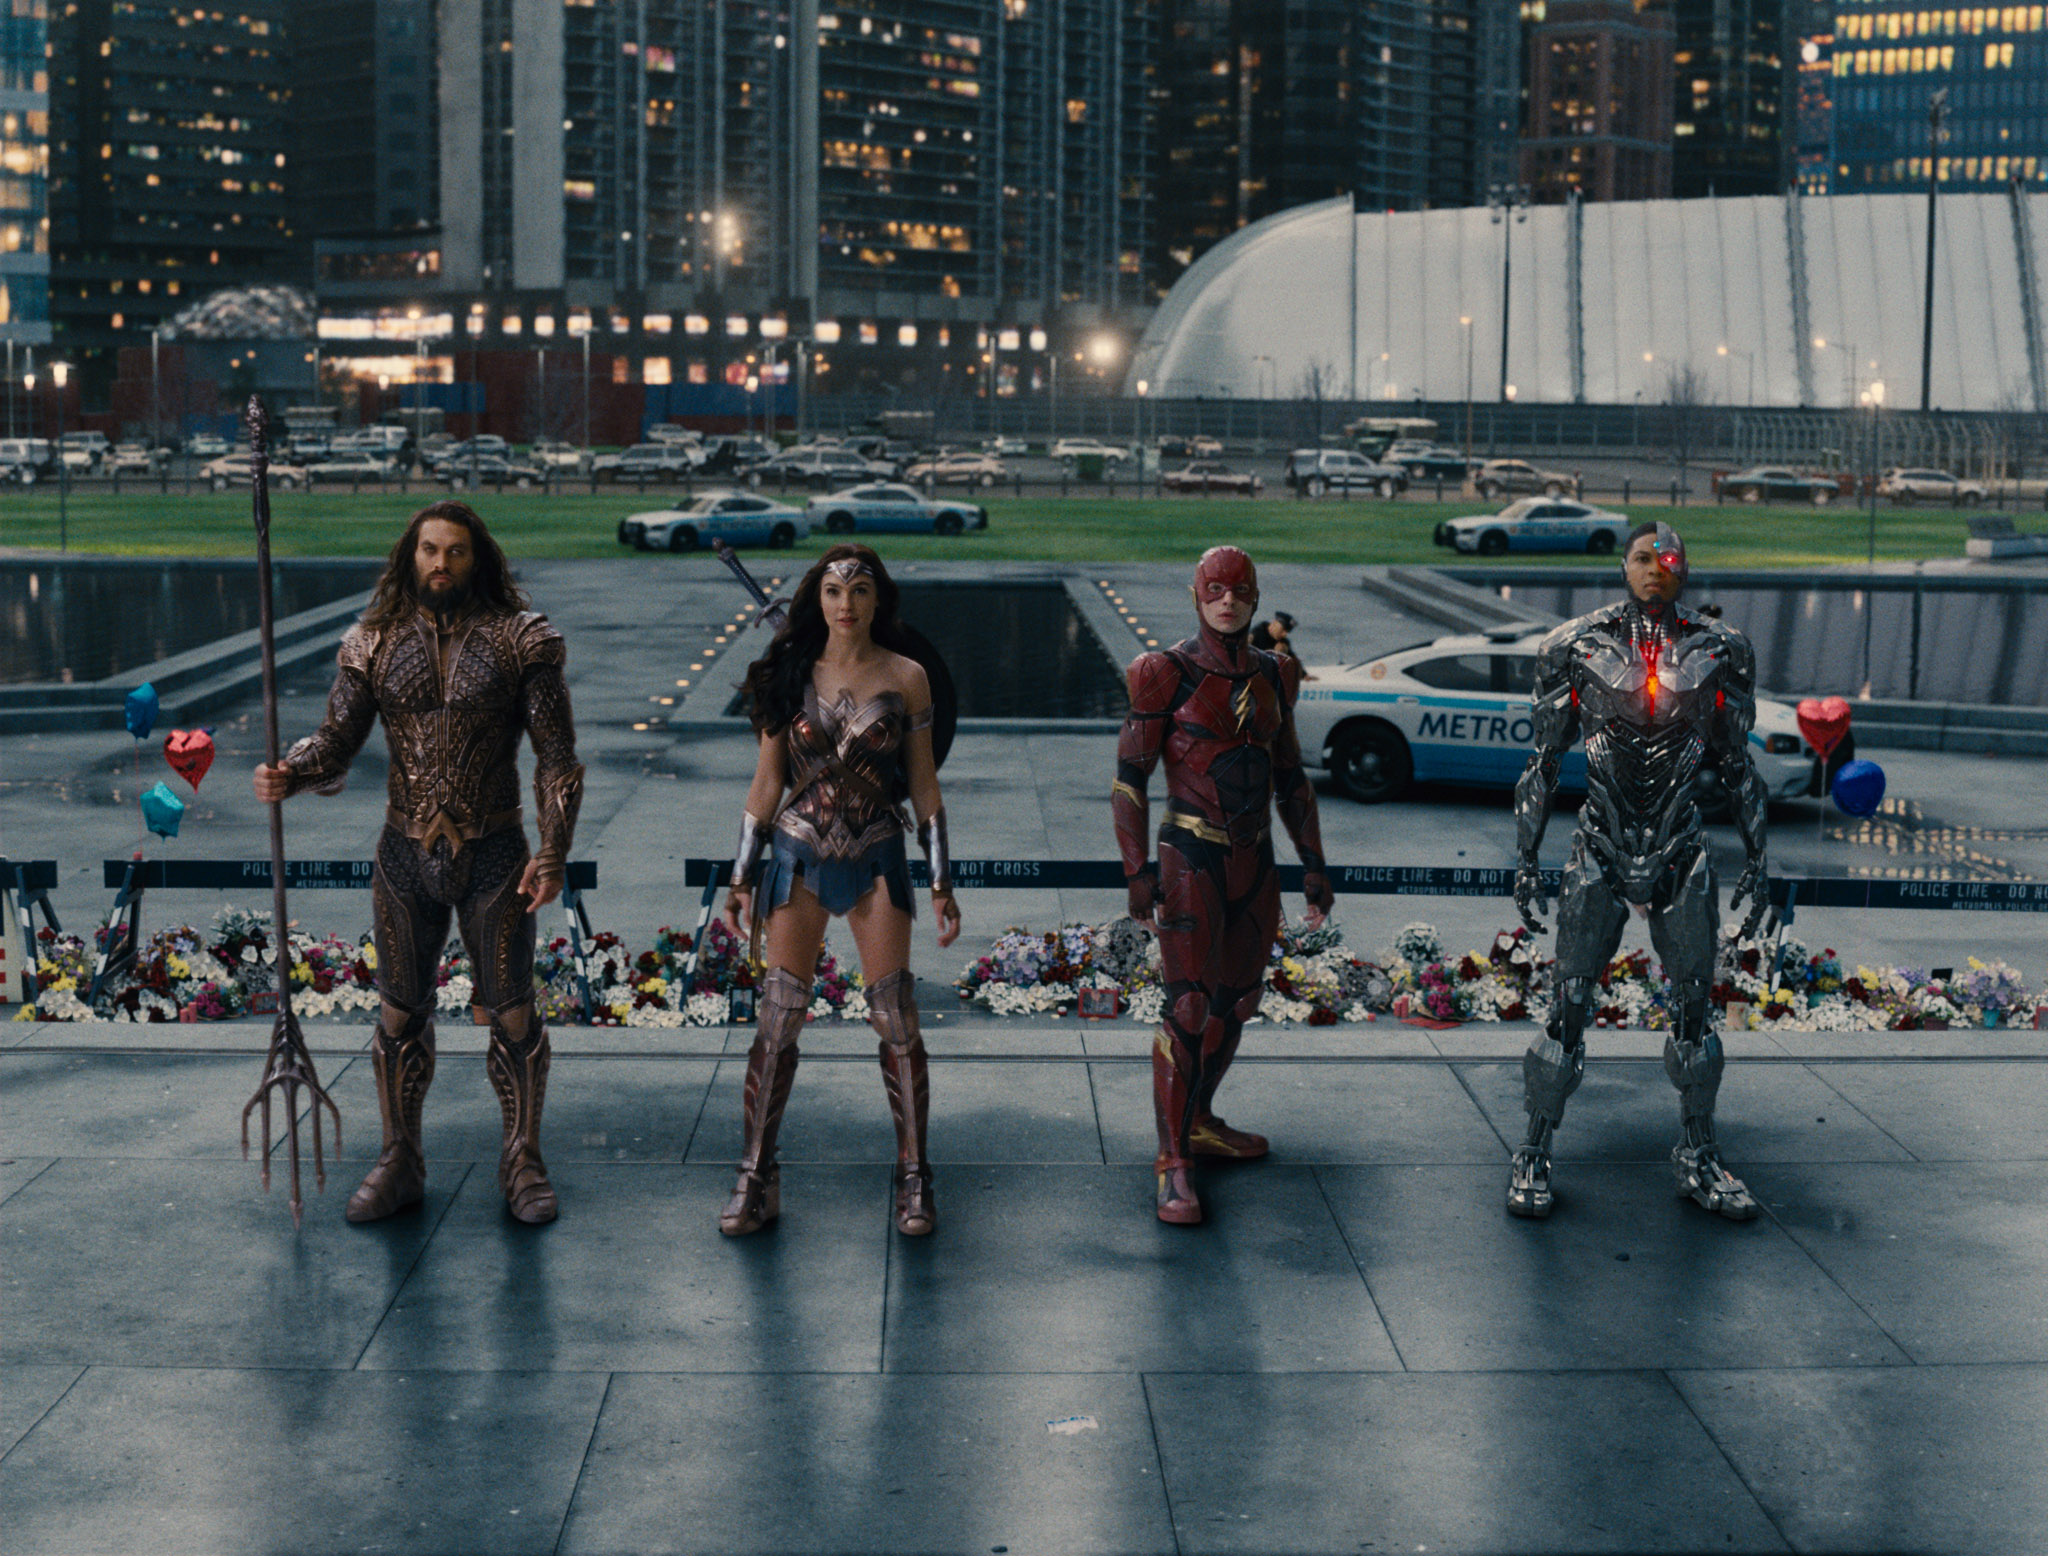 (L-r) JASON MOMOA as Aquaman, GAL GADOT as Wonder Woman, EZRA MILLER as The Flash and RAY FISHER as Cyborg in Warner Bros. Pictures' action adventure